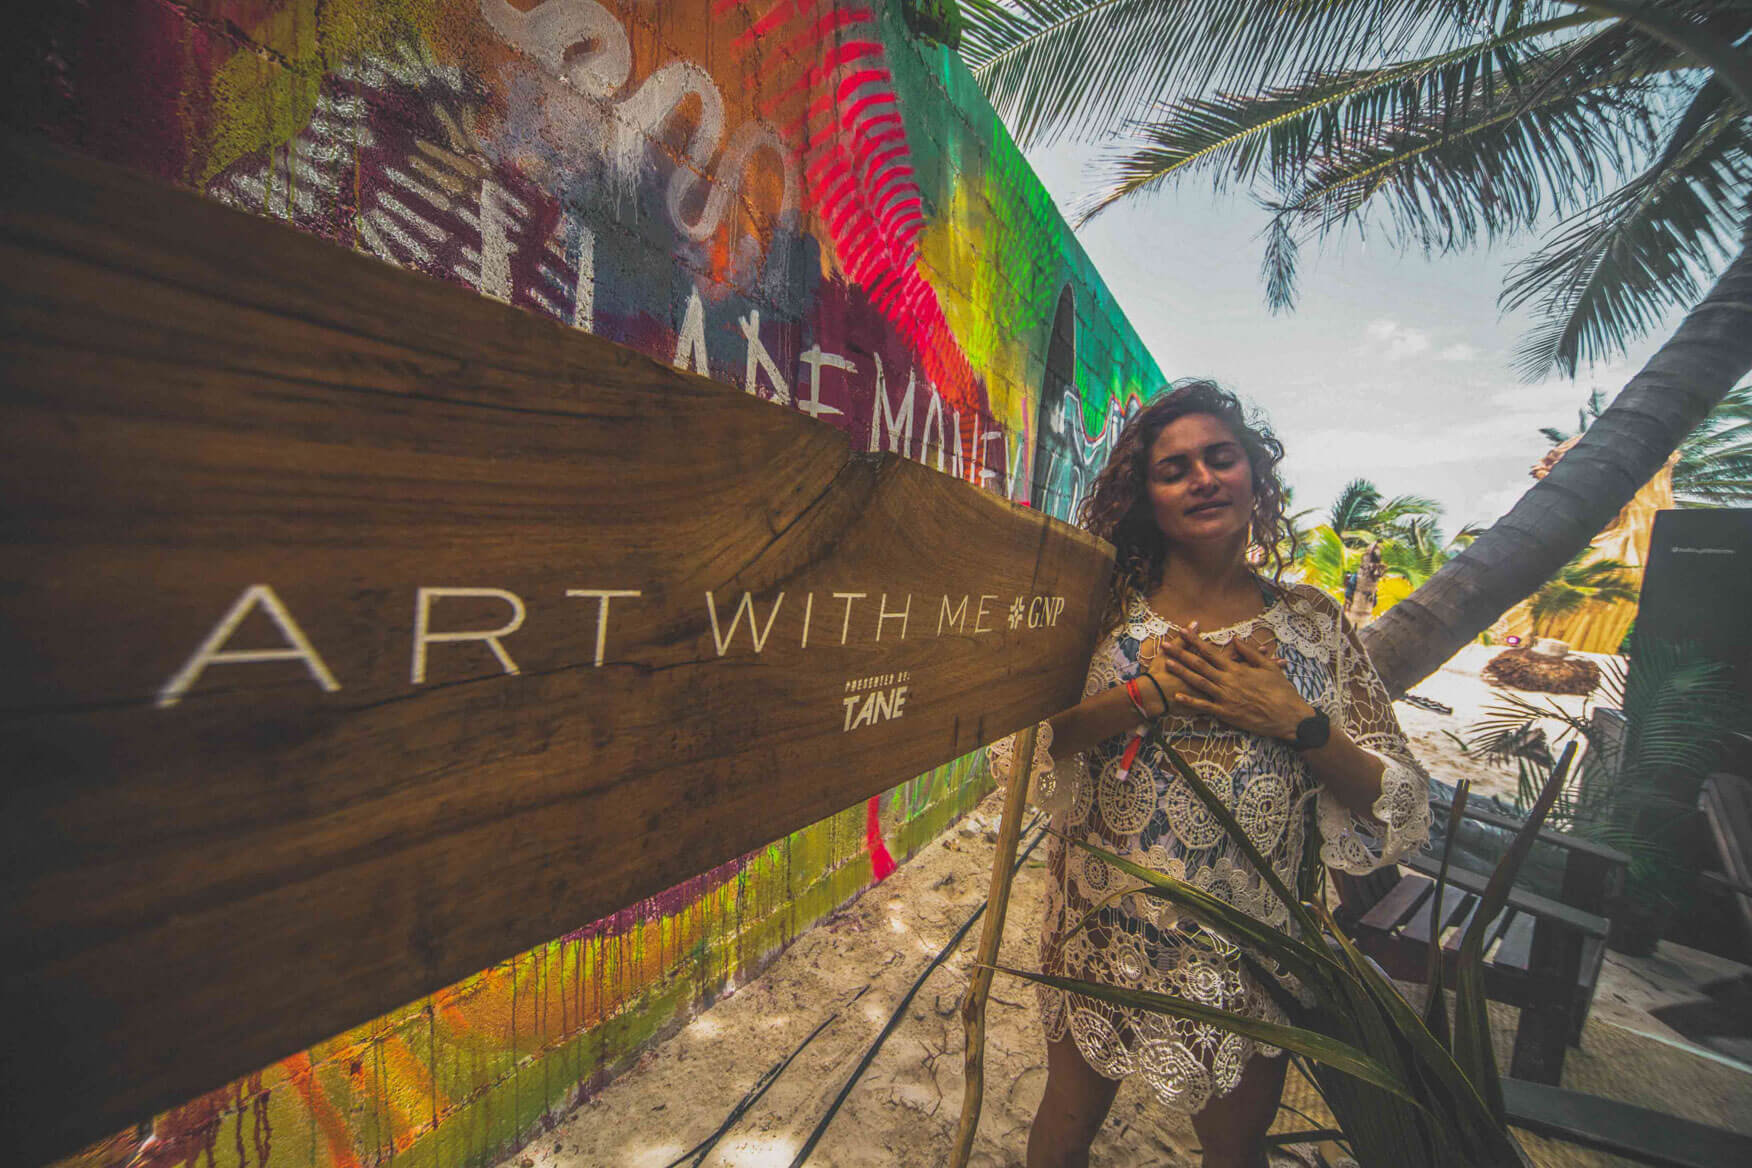 Art With Me *GNP Community